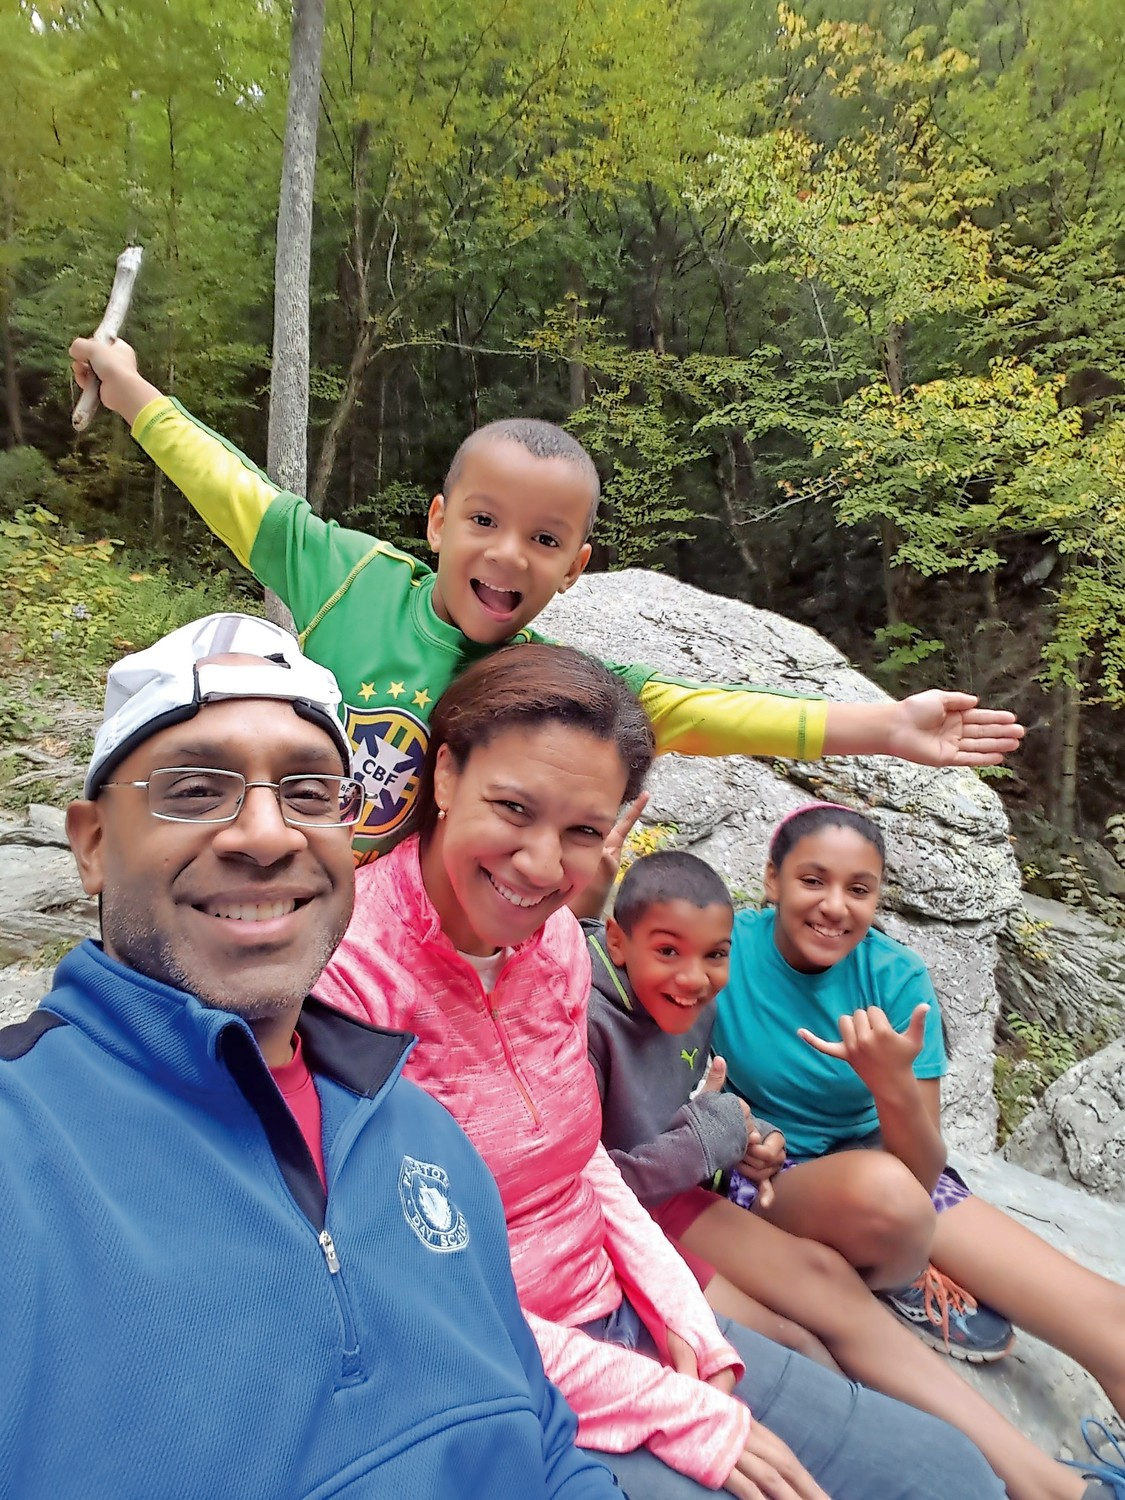 Nigel Furlonge goes on a hike with his family. Furlonge will start as the new principal of Fieldston Upper School in the fall.